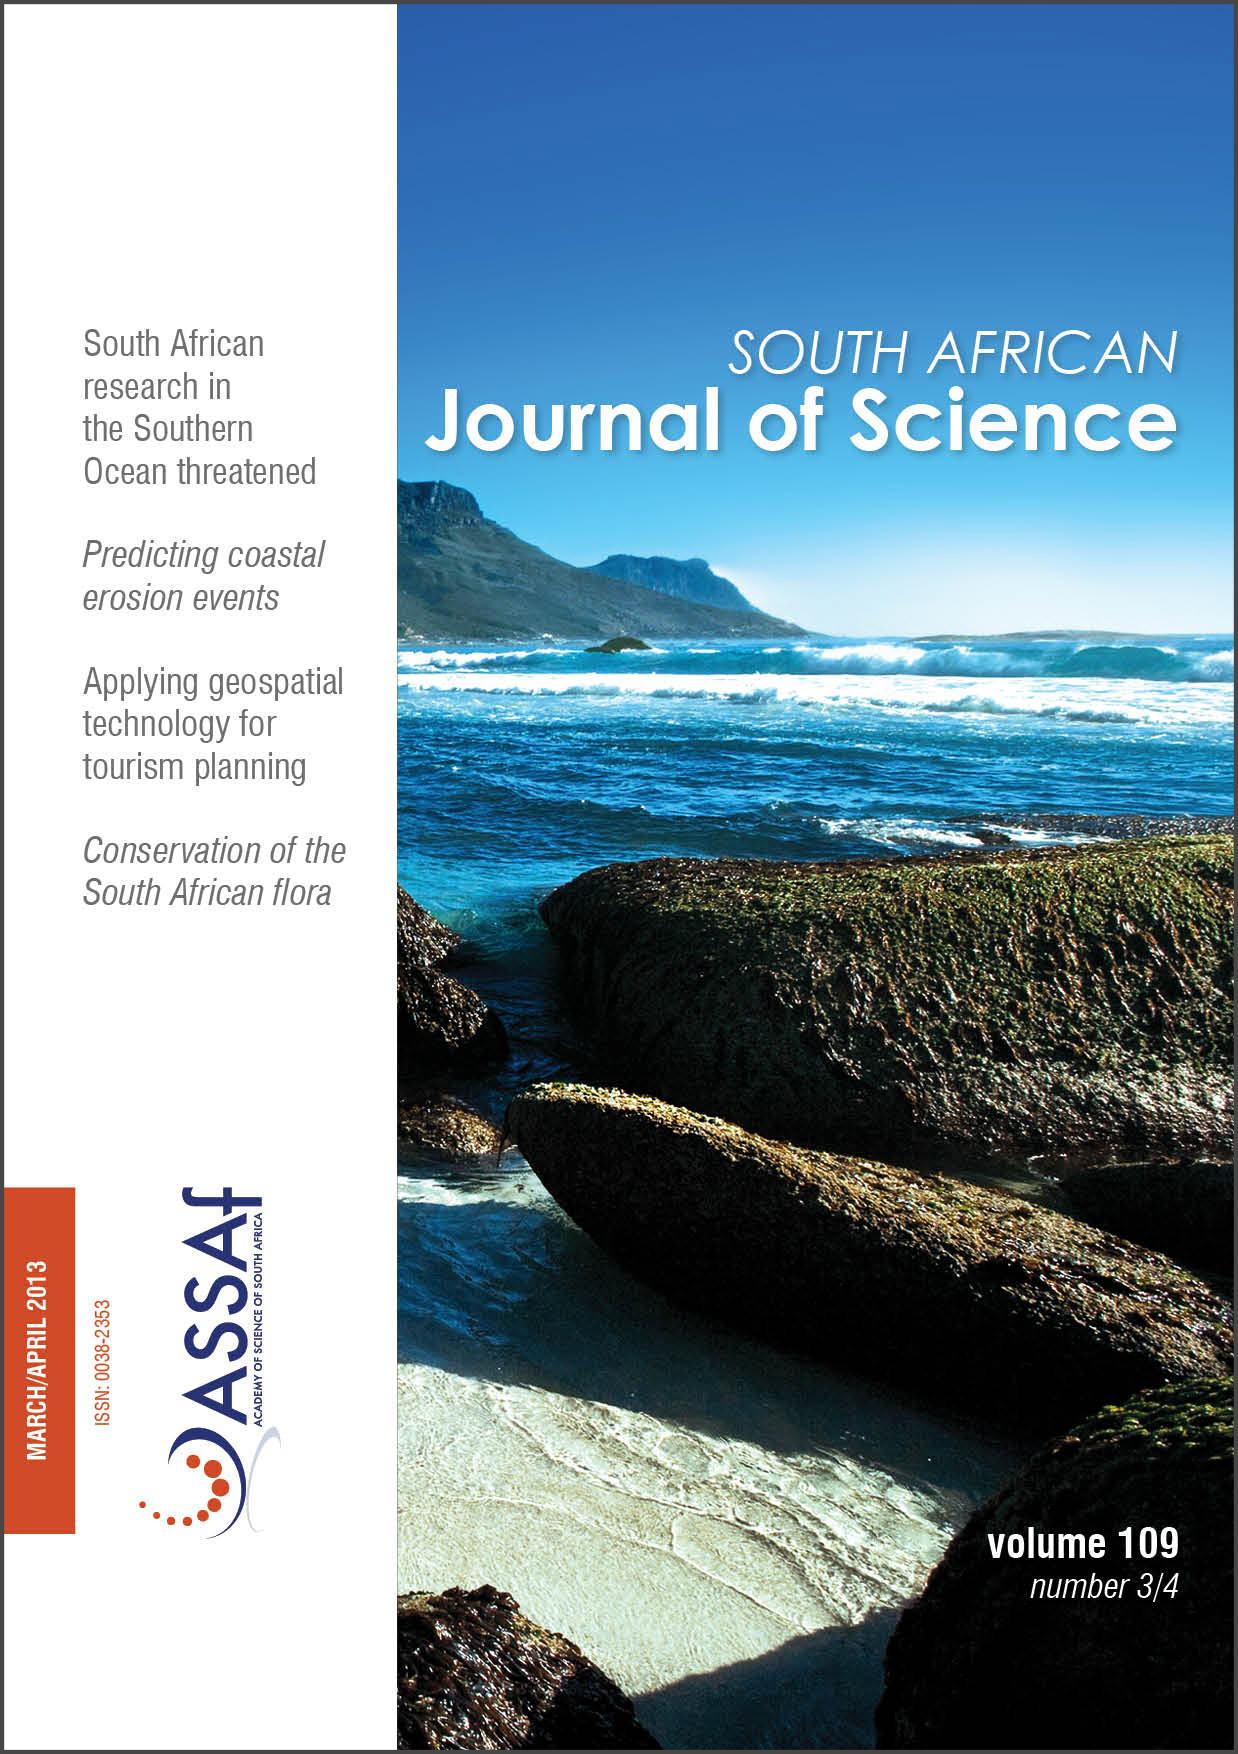 View Vol. 109 No. 3/4 (2013): South African Journal of Science